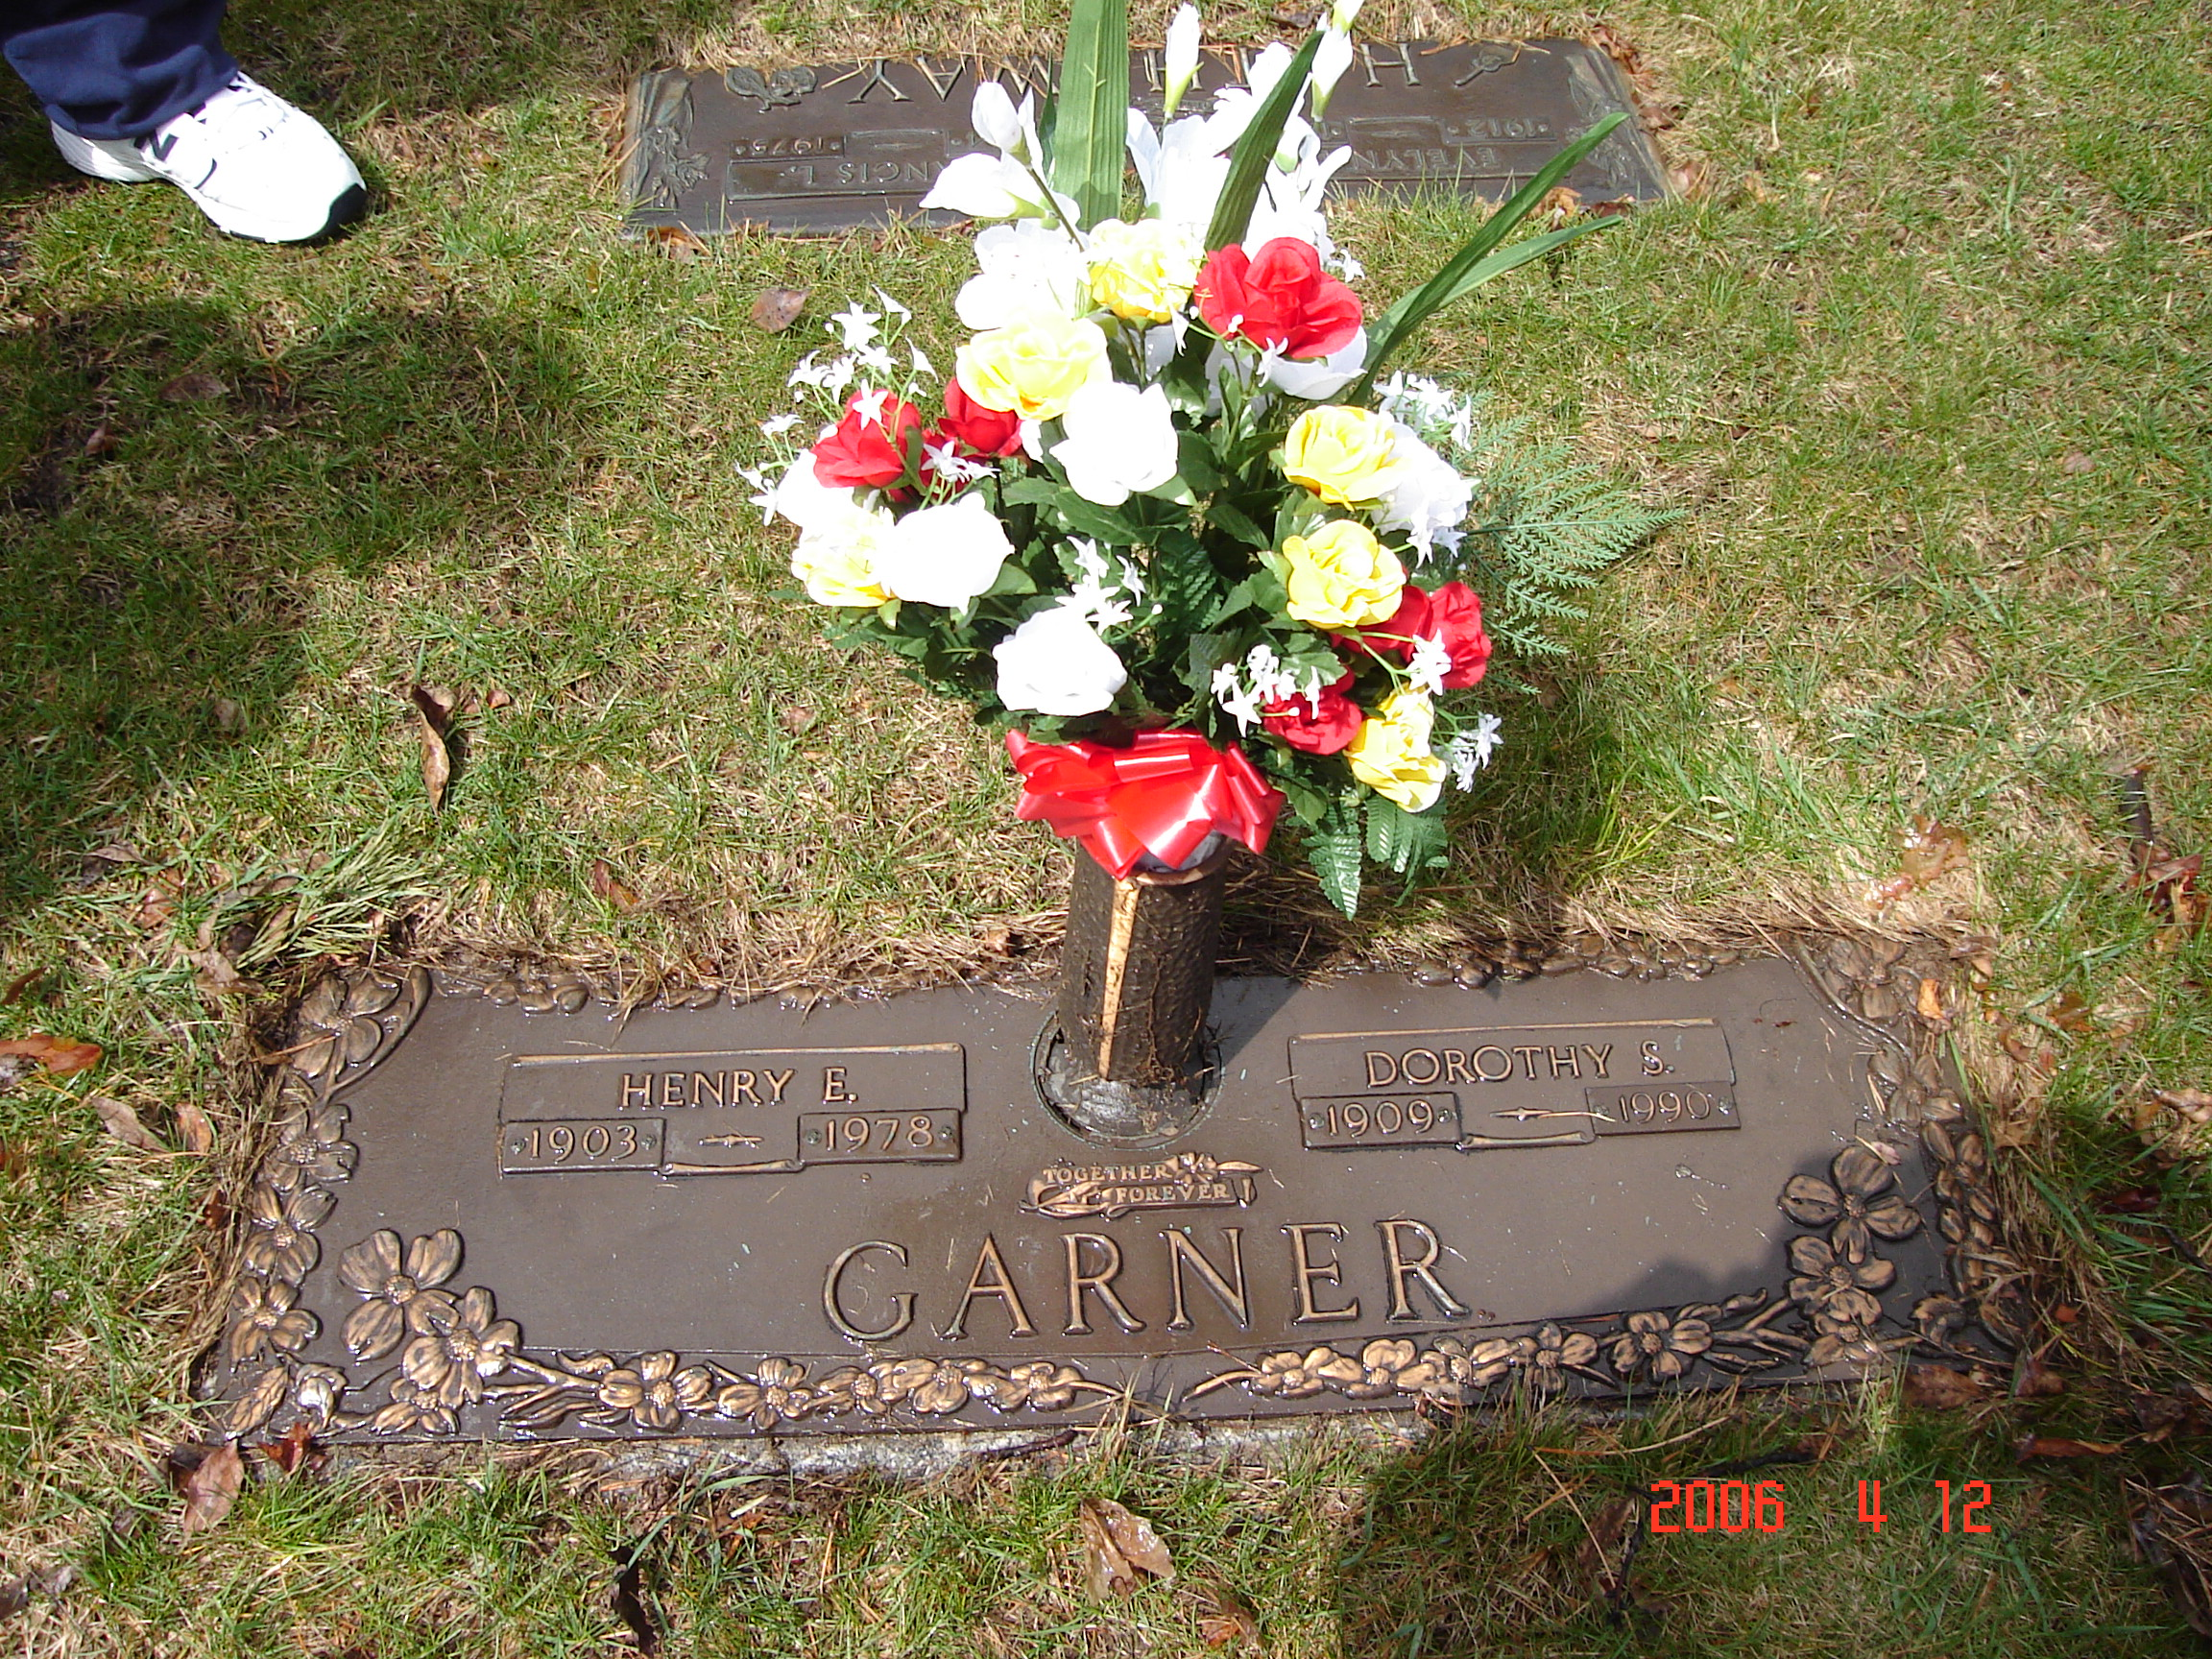 Illinois adams county fowler - She Married Henry Elmer Garner 10 Jul 1926 In Quincy Adams County Illinios He Was Born 11 Mar 1903 In Pea Ridge Township Brown County Illinois